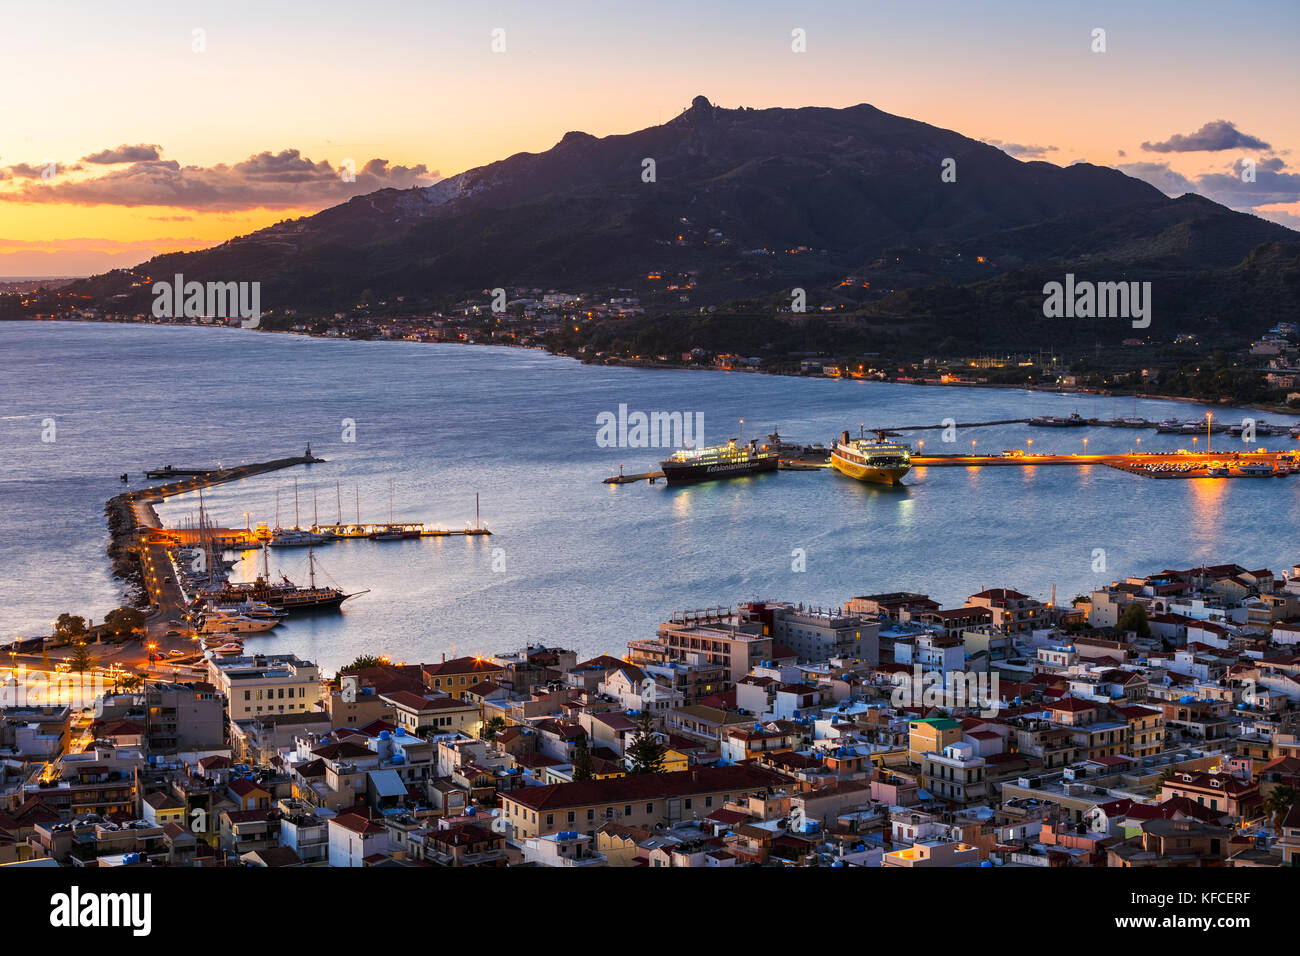 Harbor of Zakynthos town as seen from Bochali view point, Greece. - Stock Image